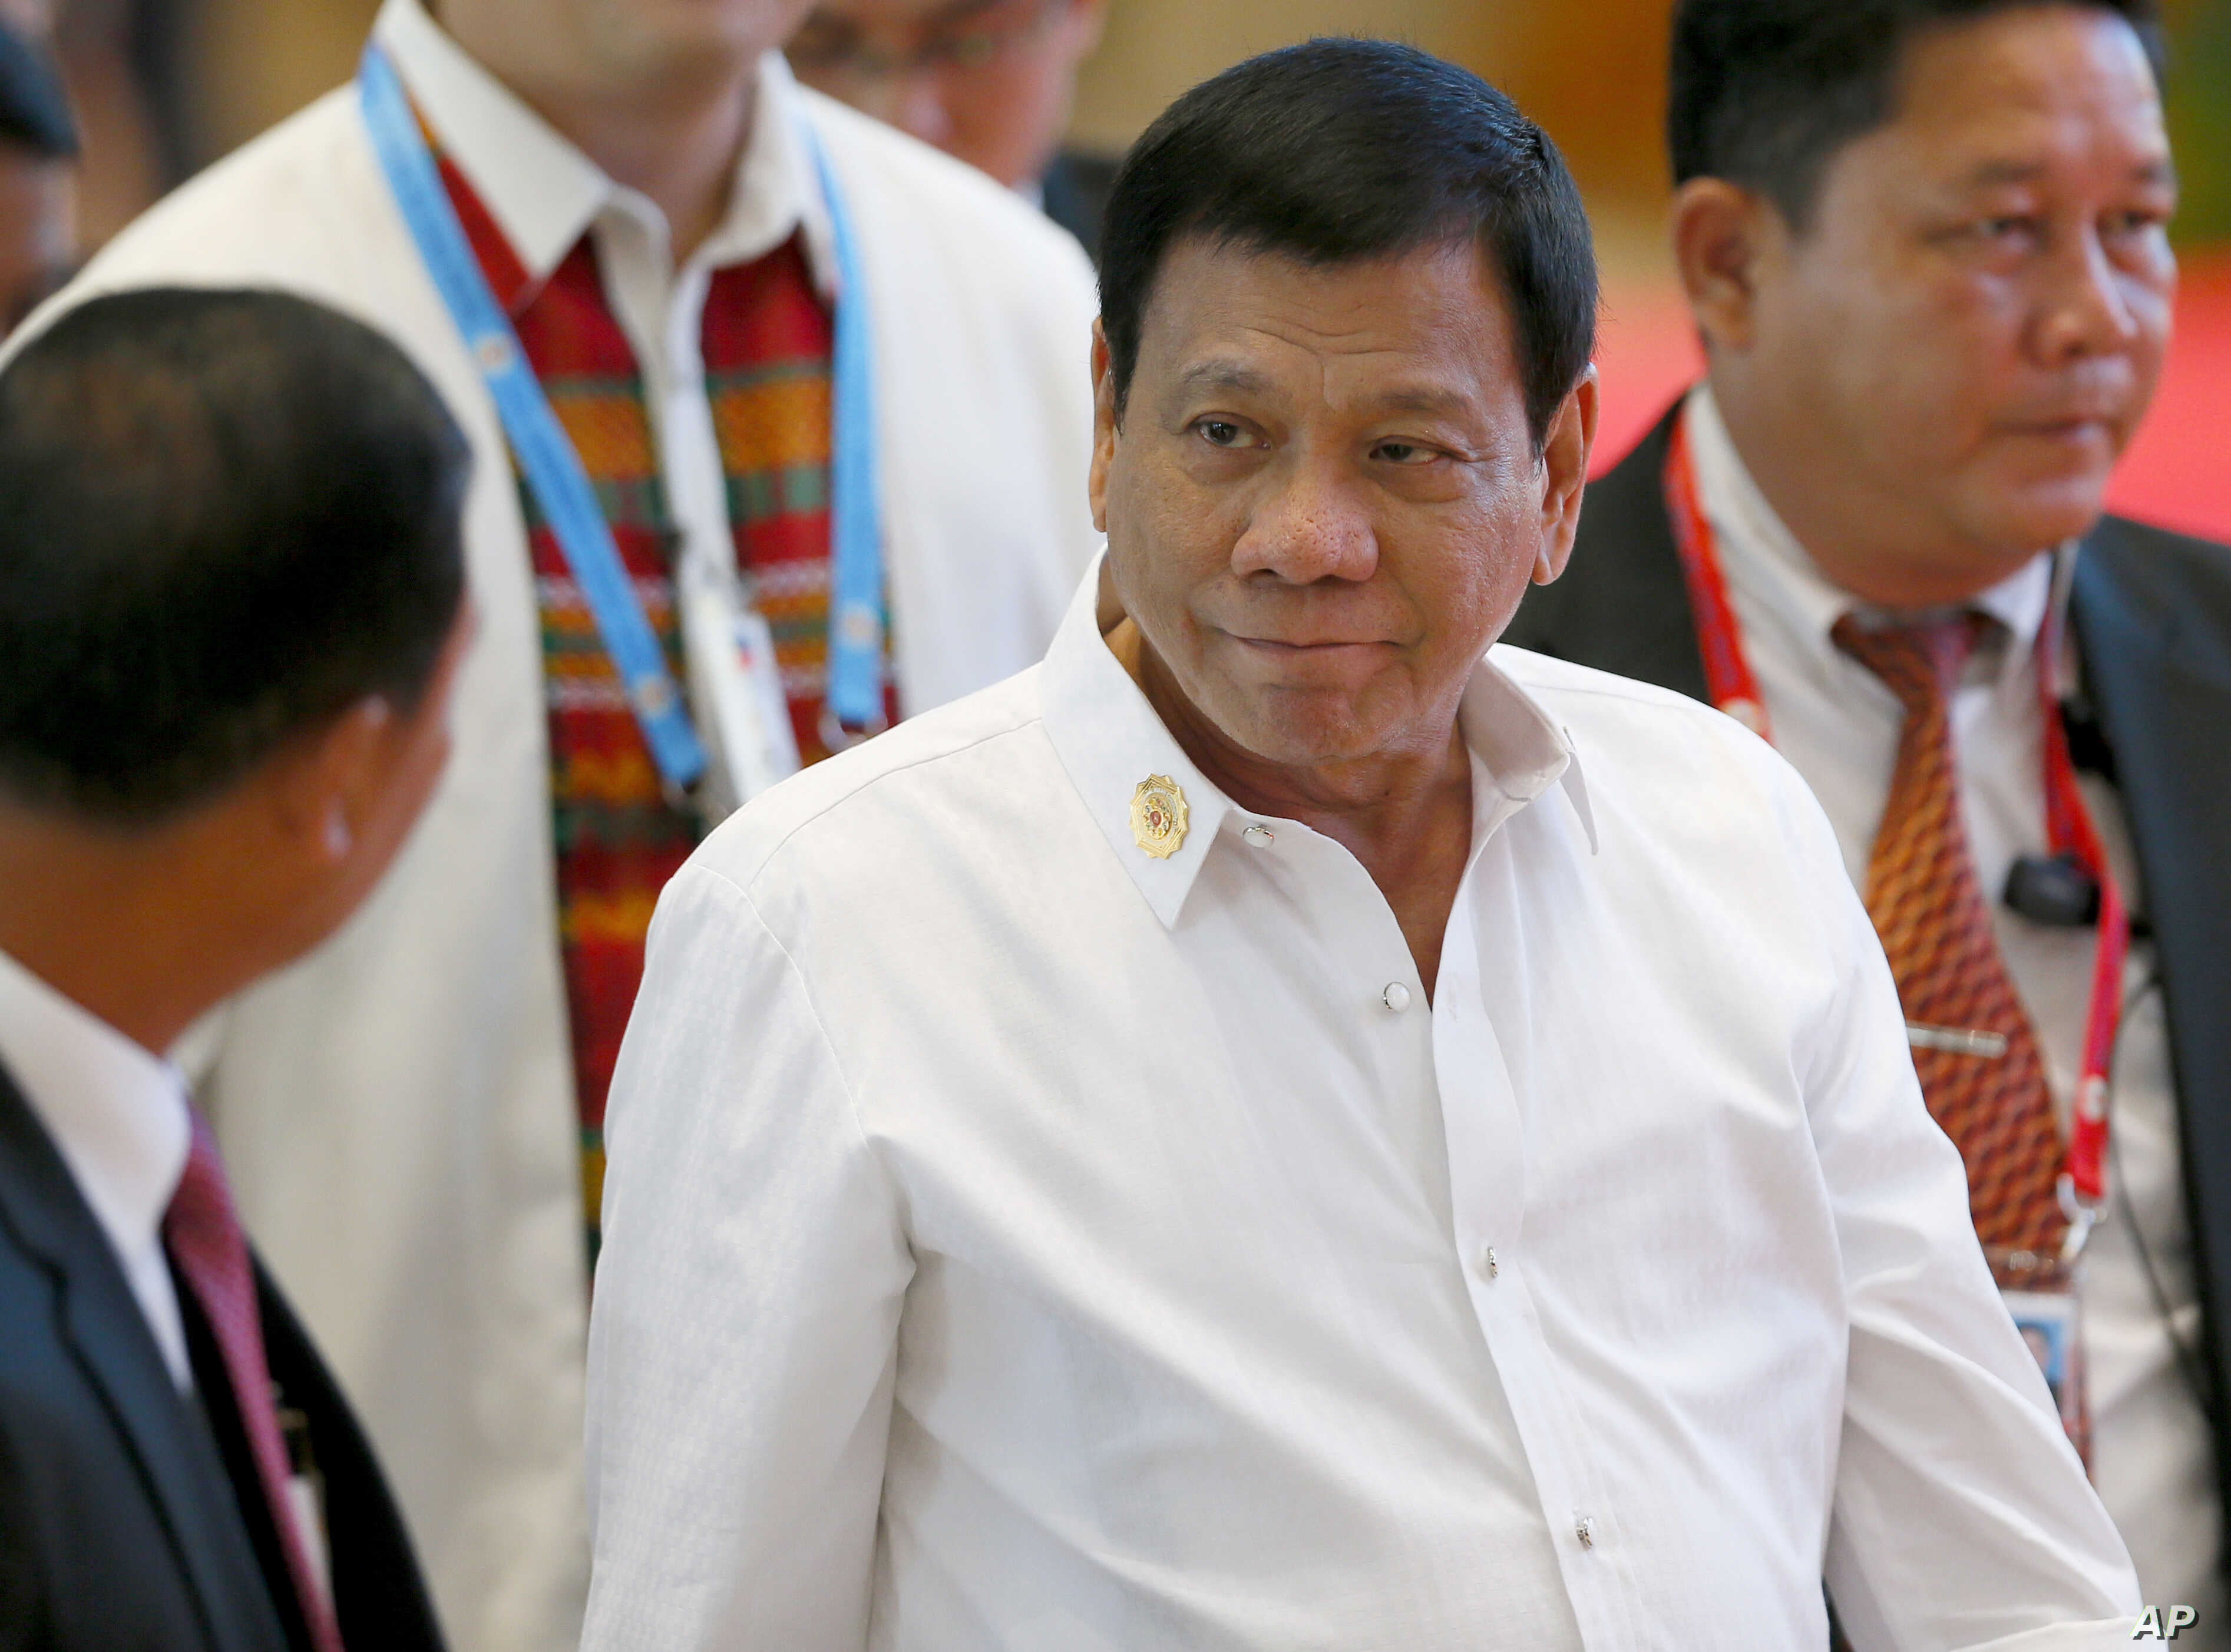 Philippine President Rodrigo Duterte arrives at the National Convention Center for scheduled bilateral meetings with ASEAN leaders on the sidelines of the 28th and 29th ASEAN Summits and other related summits Tuesday, Sept. 6, 2016.